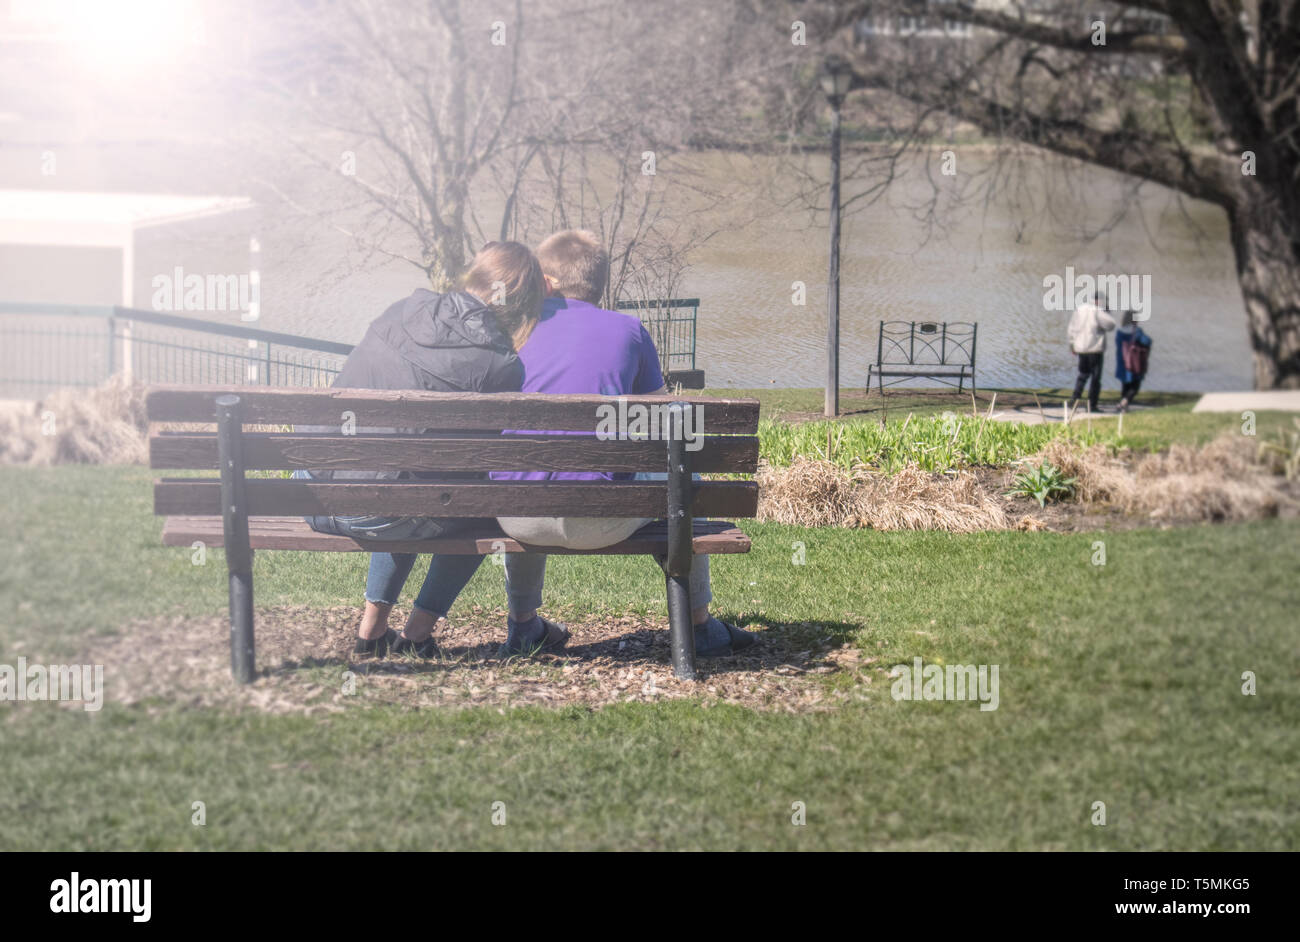 A couple sitting on a park bench. She tenderly lays her head on his shoulder, during a sunny day of spring. View from behind. - Stock Image